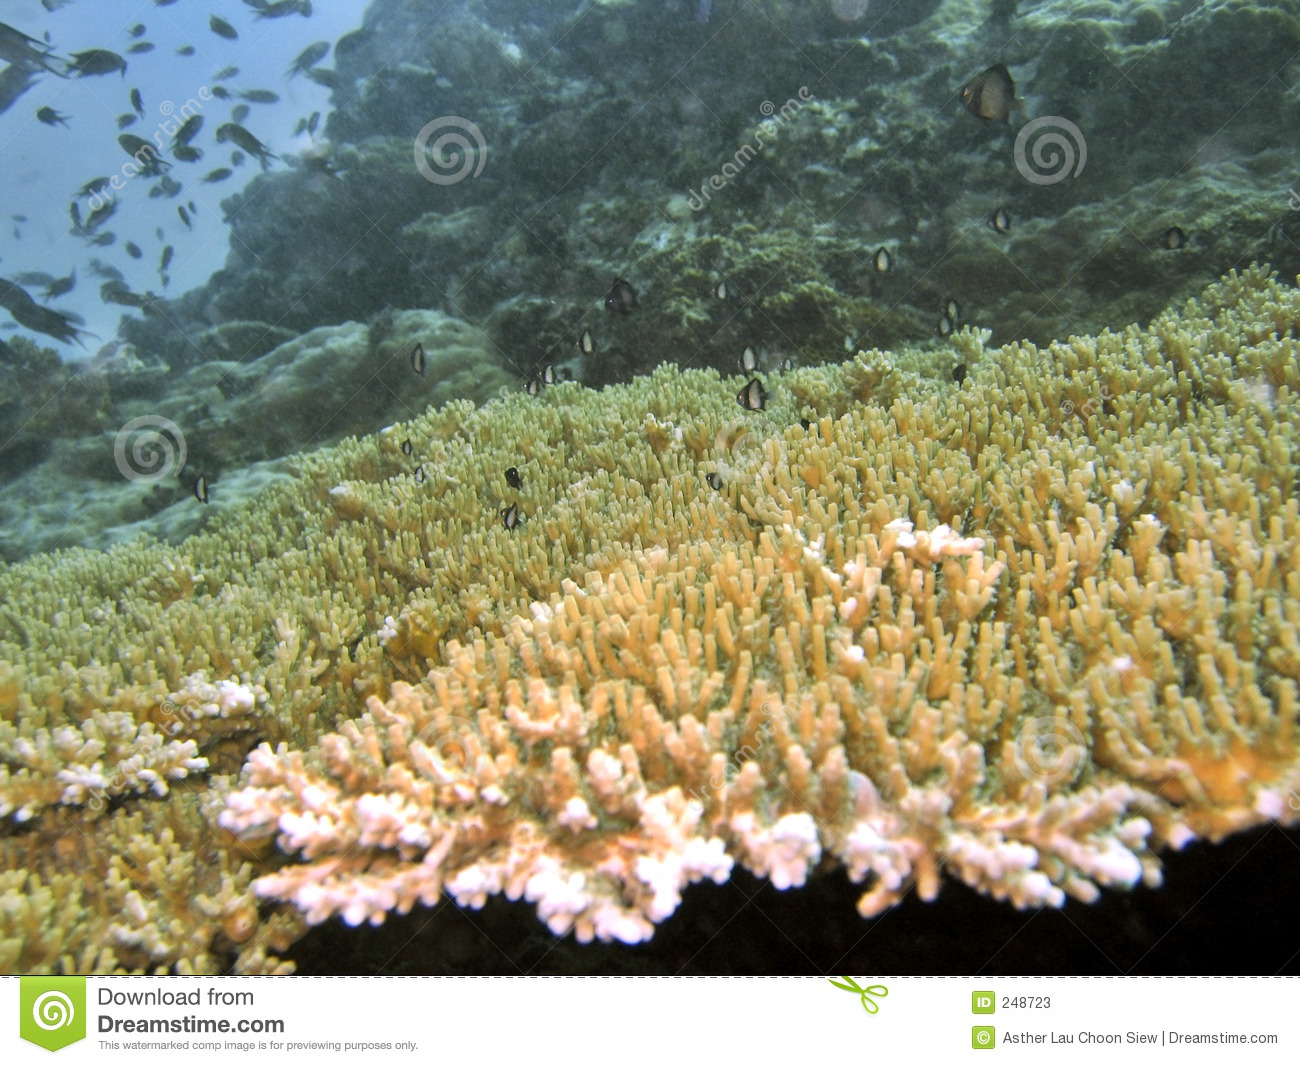 Table Coral Stock Photos - Image: 248723